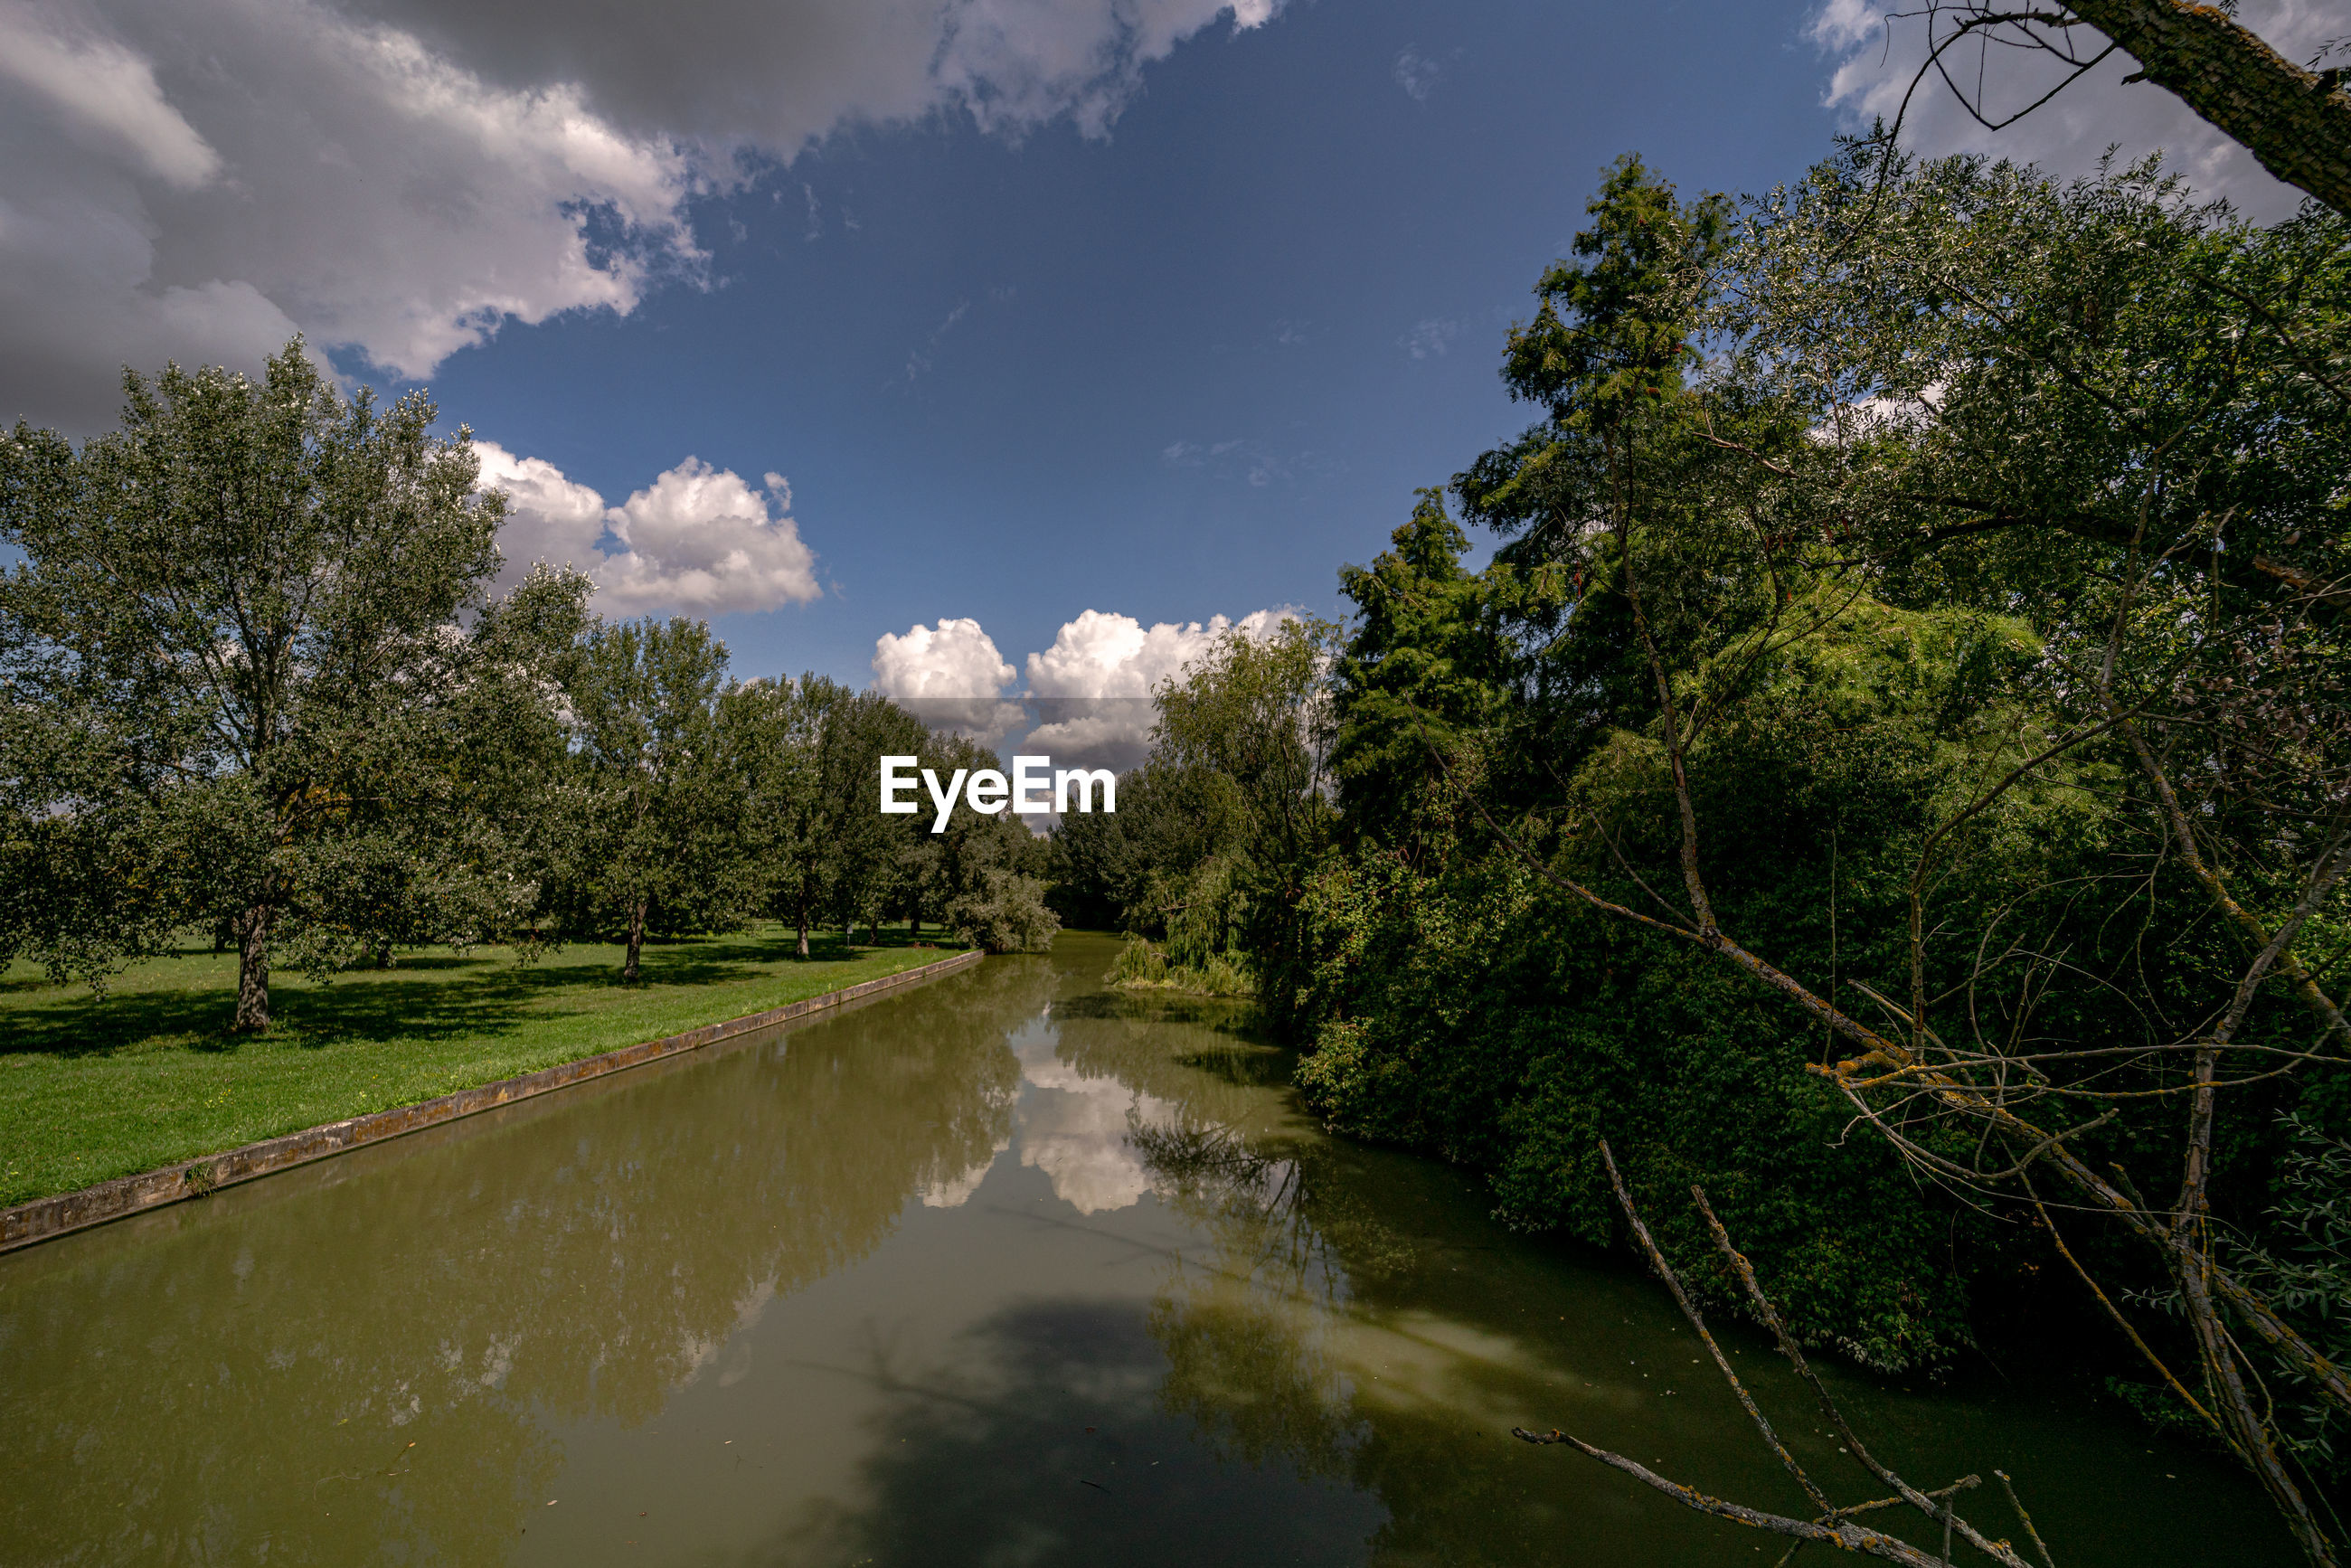 SCENIC VIEW OF CANAL AGAINST SKY